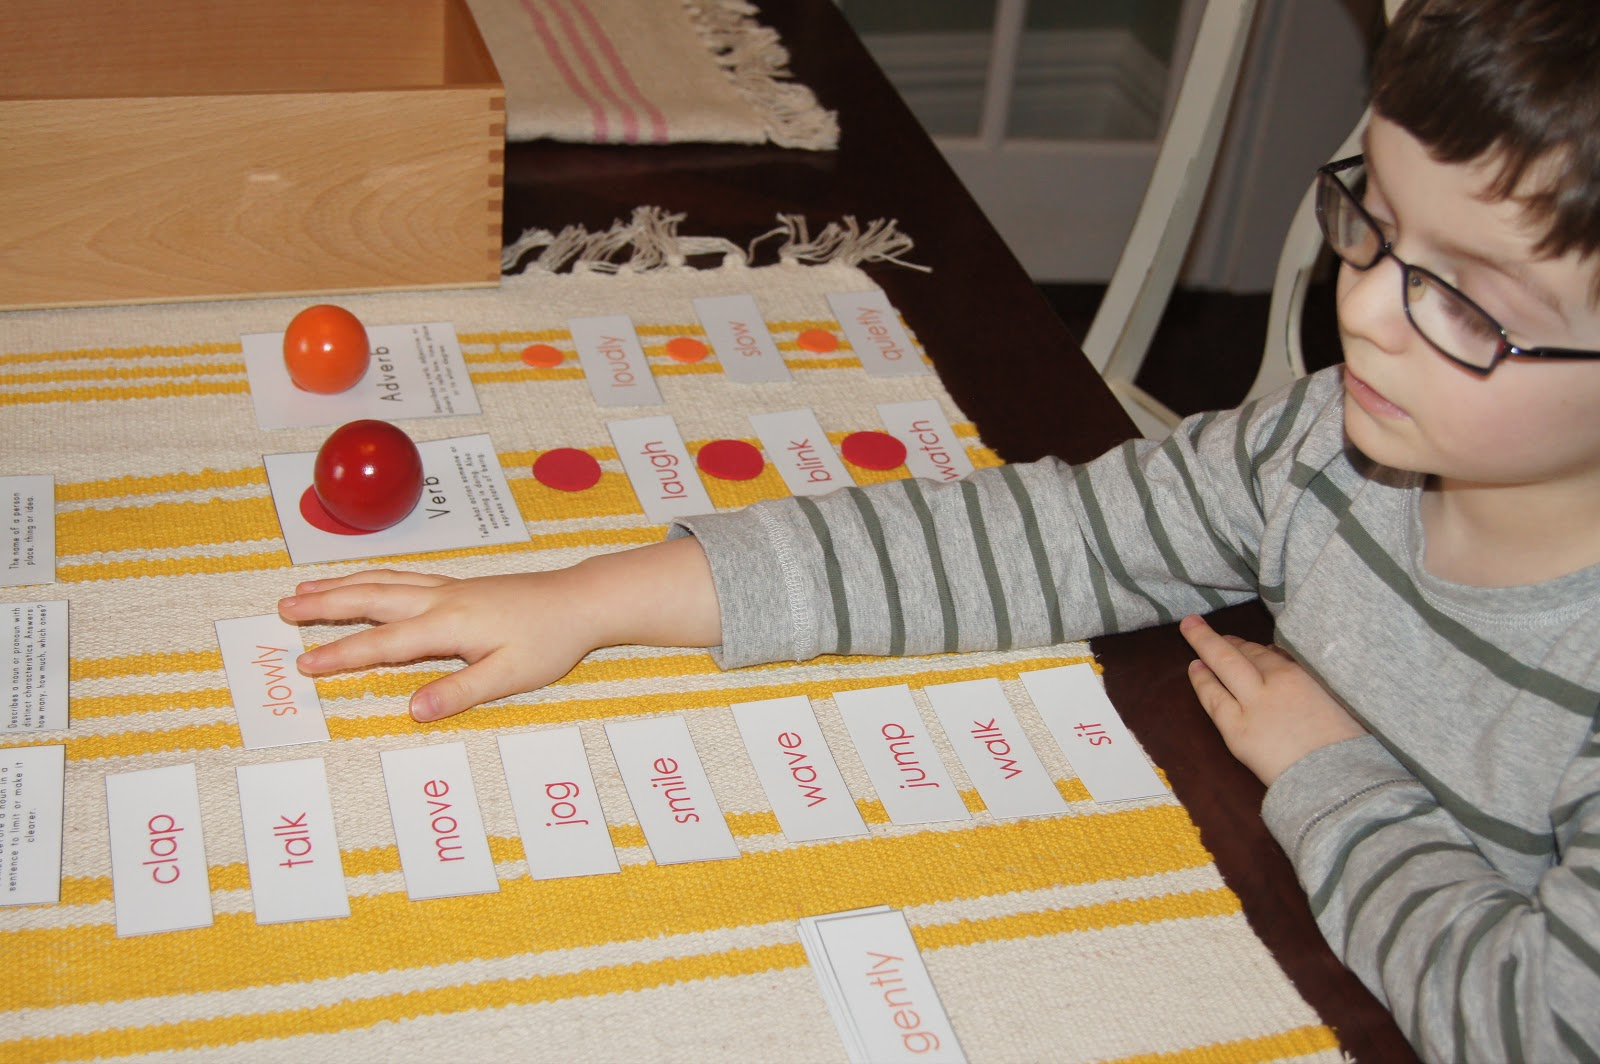 montessori language This wiki was created to give montessori teachers a way to look up lessons online without having to lug out their albums in those giant binders, and as a place to share extensions, variation, and original lesson that they have come up with.